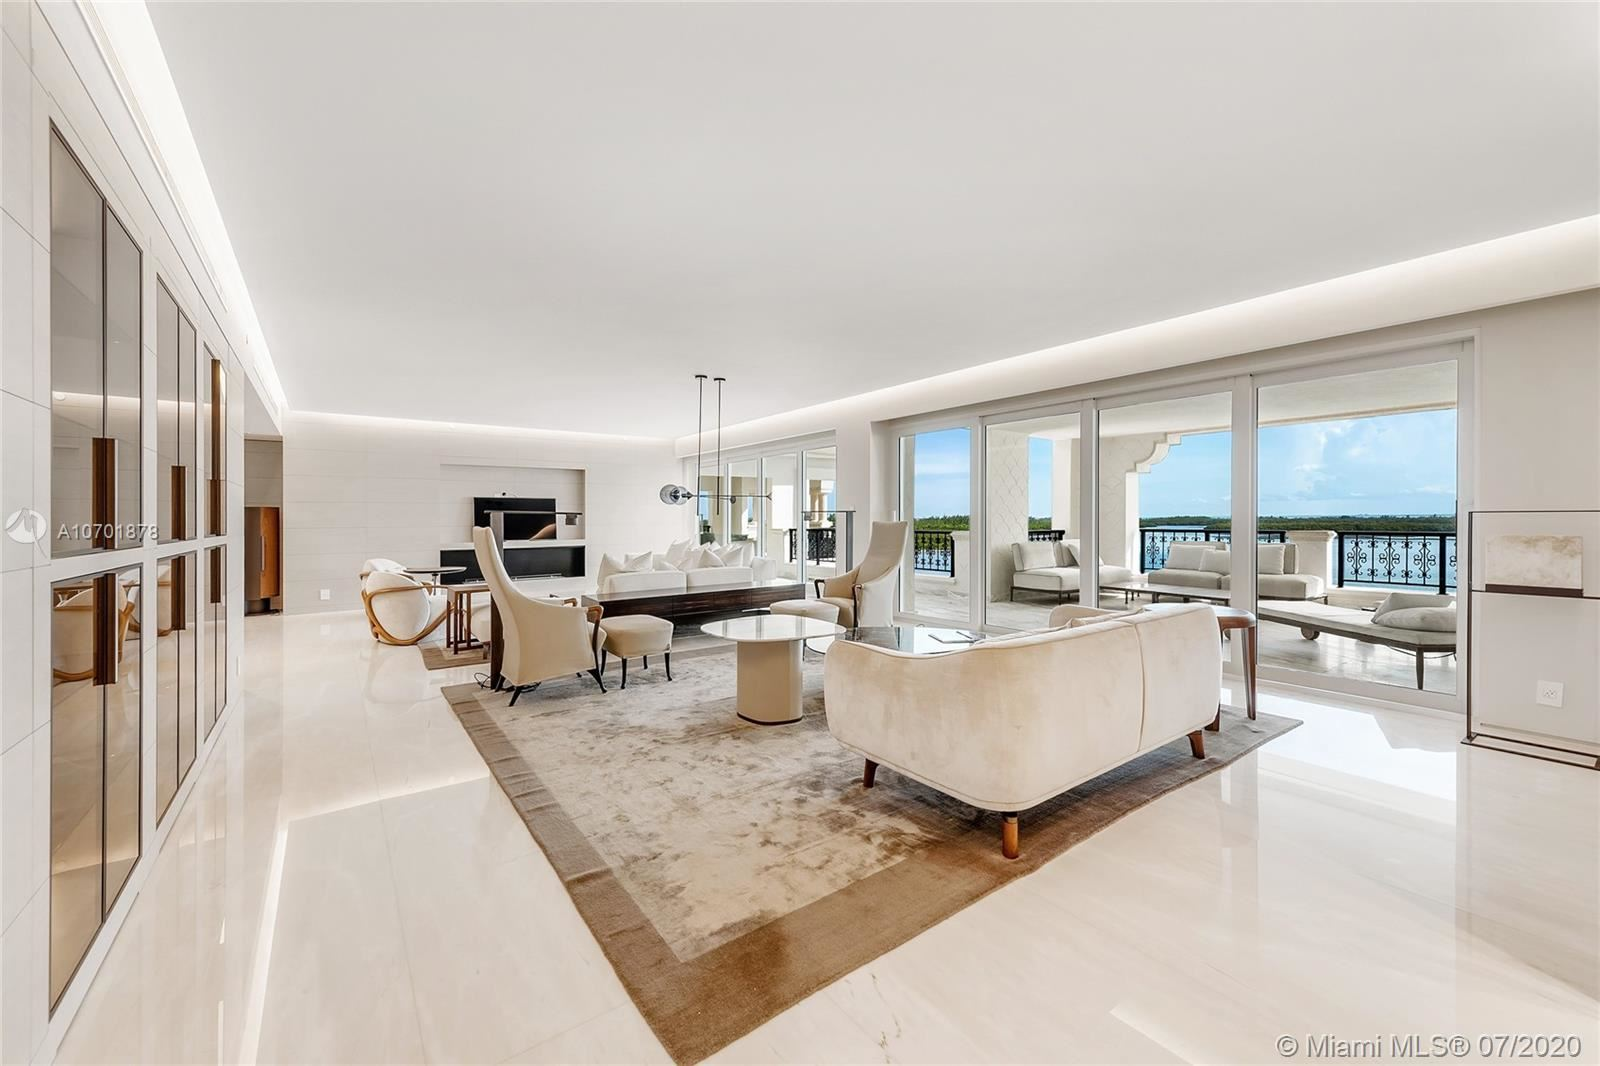 Photo 4 of Listing MLS a10701878 in 5292 Fisher Island Dr #5292 Miami FL 33109